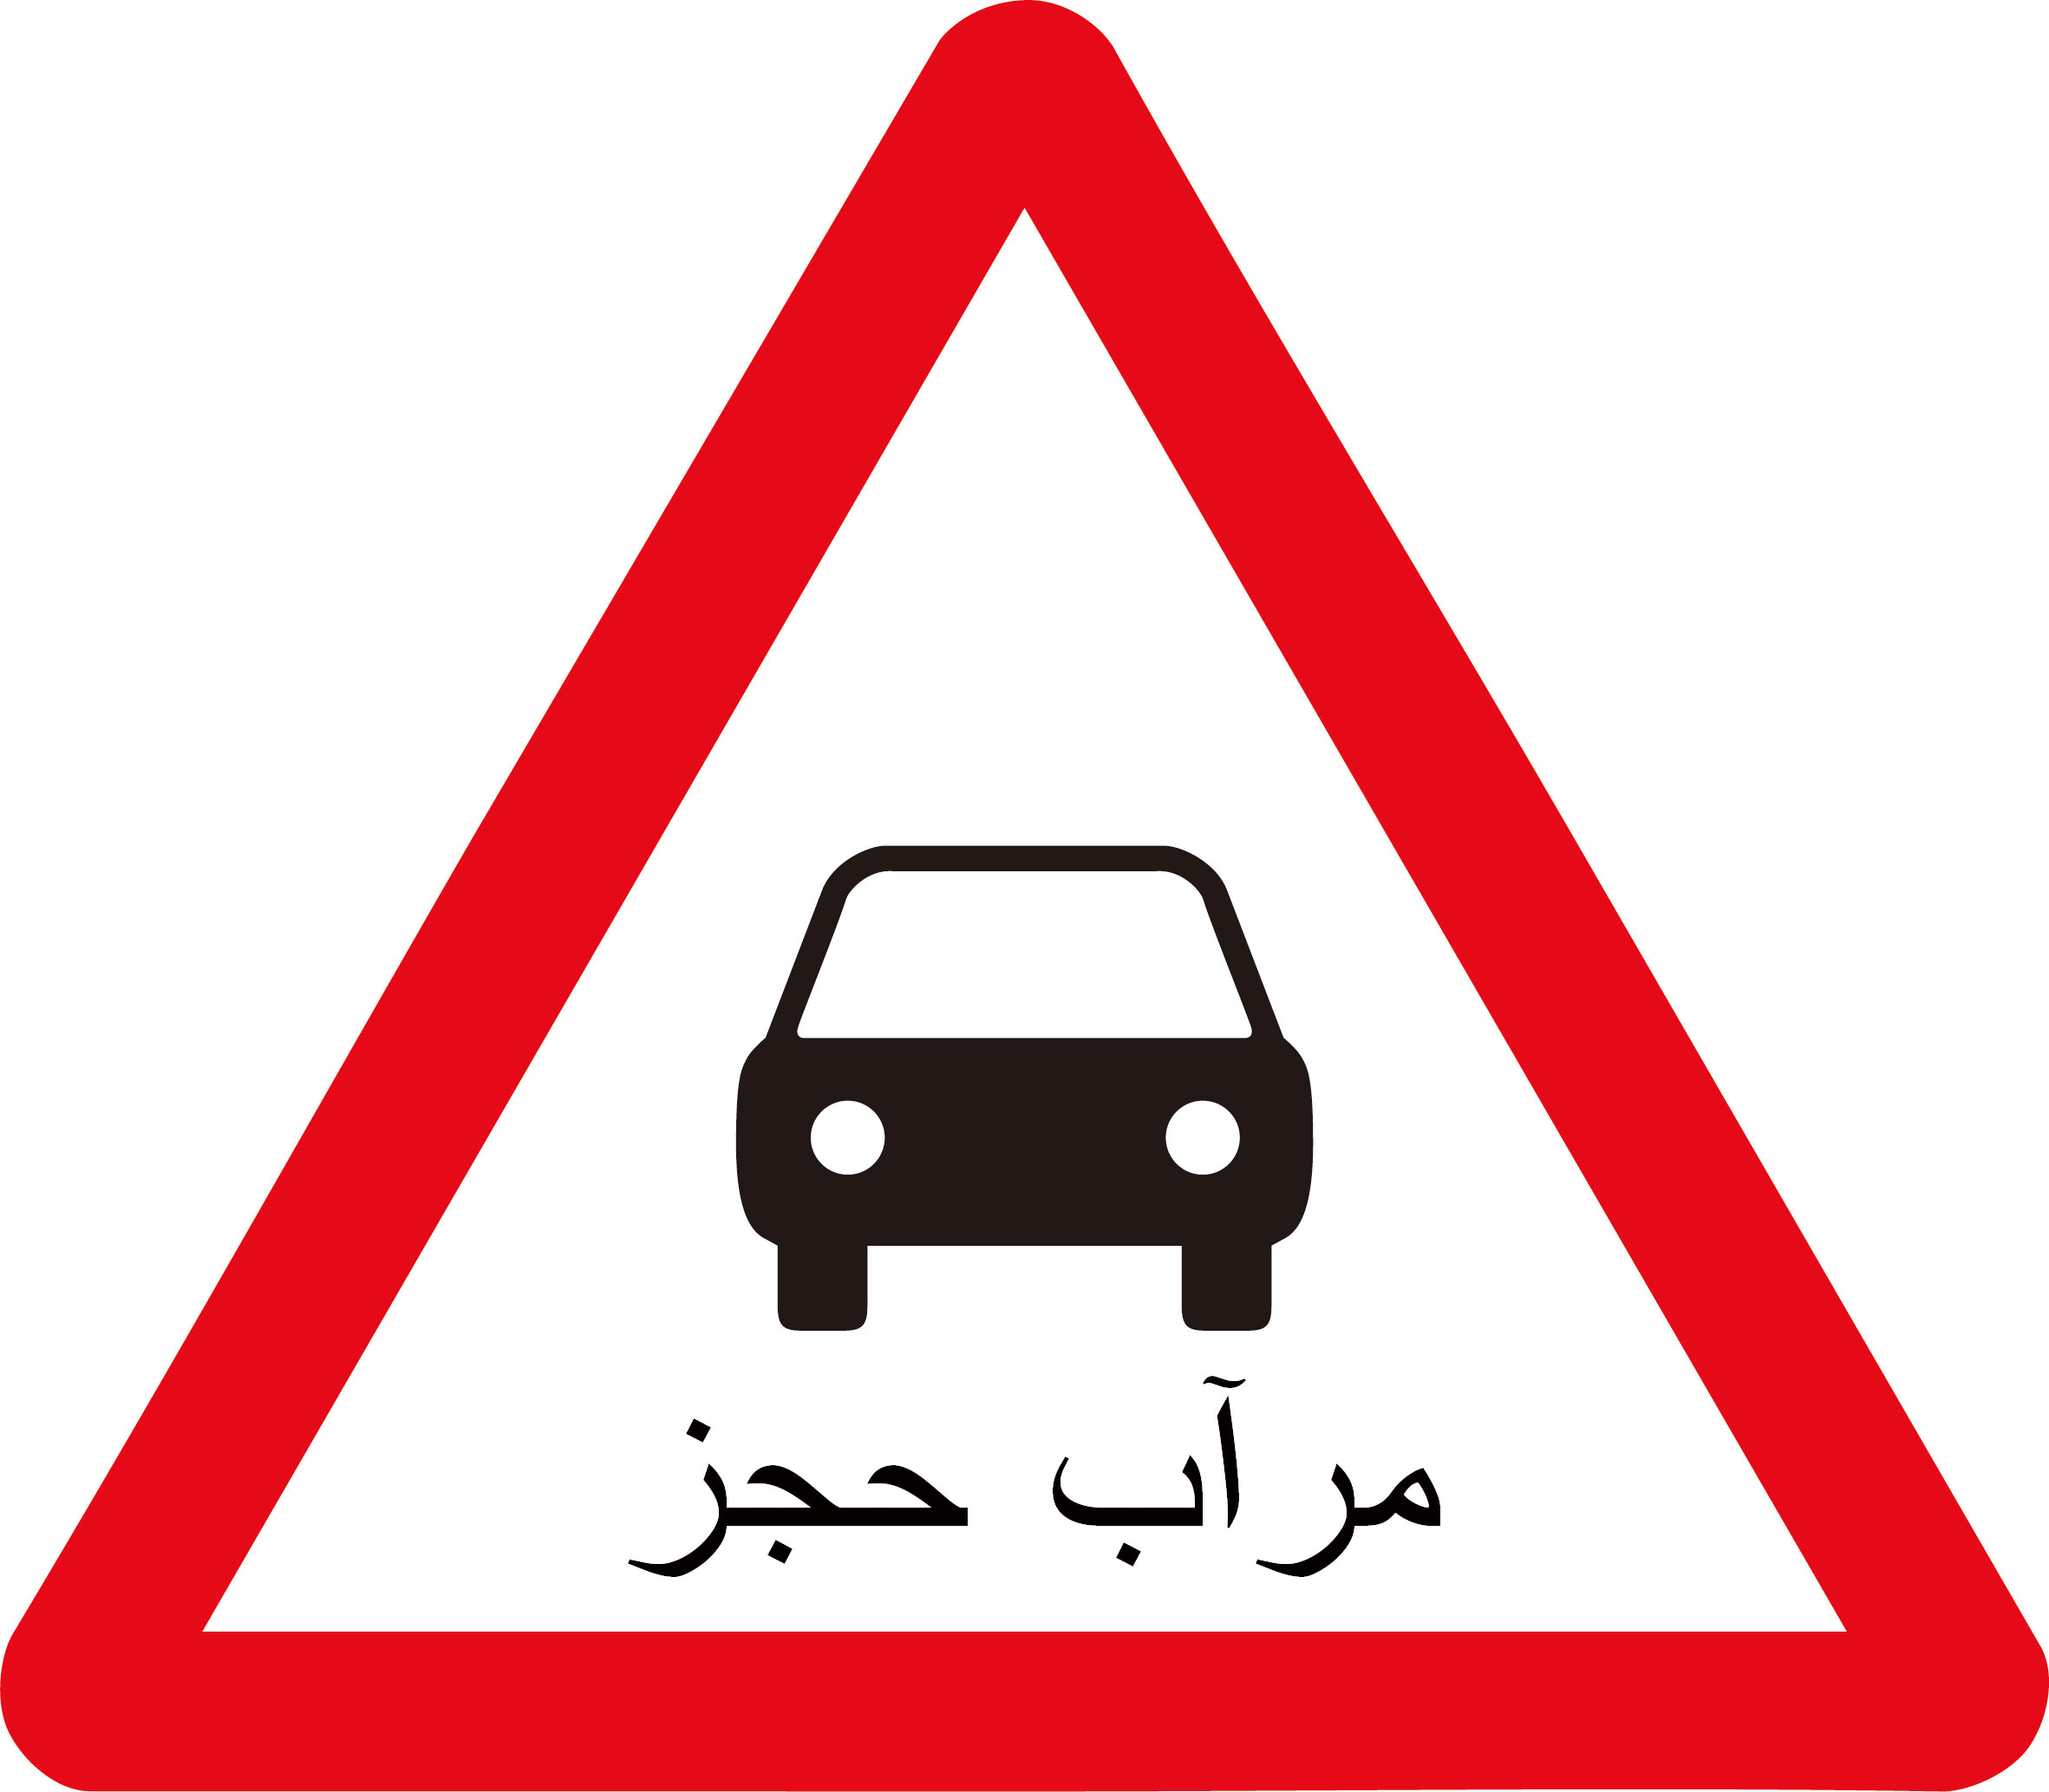 Traffic clipart road safety #11